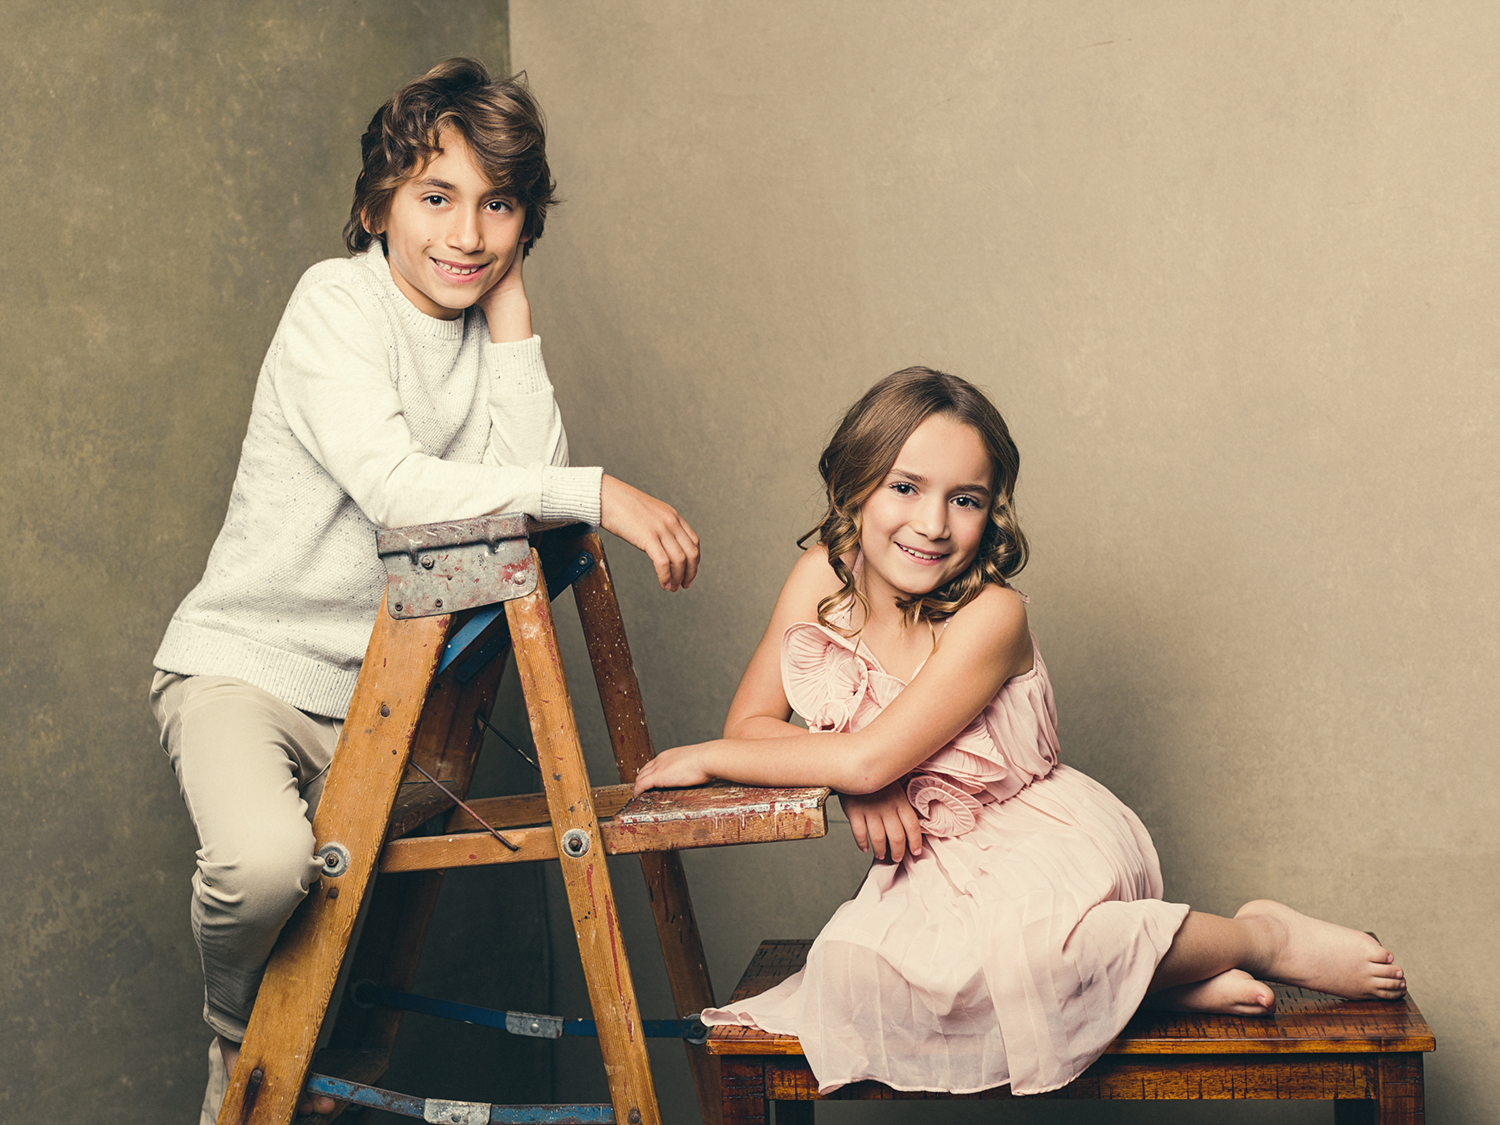 Photography of brother and sister by Mayumi Acosta.jpg